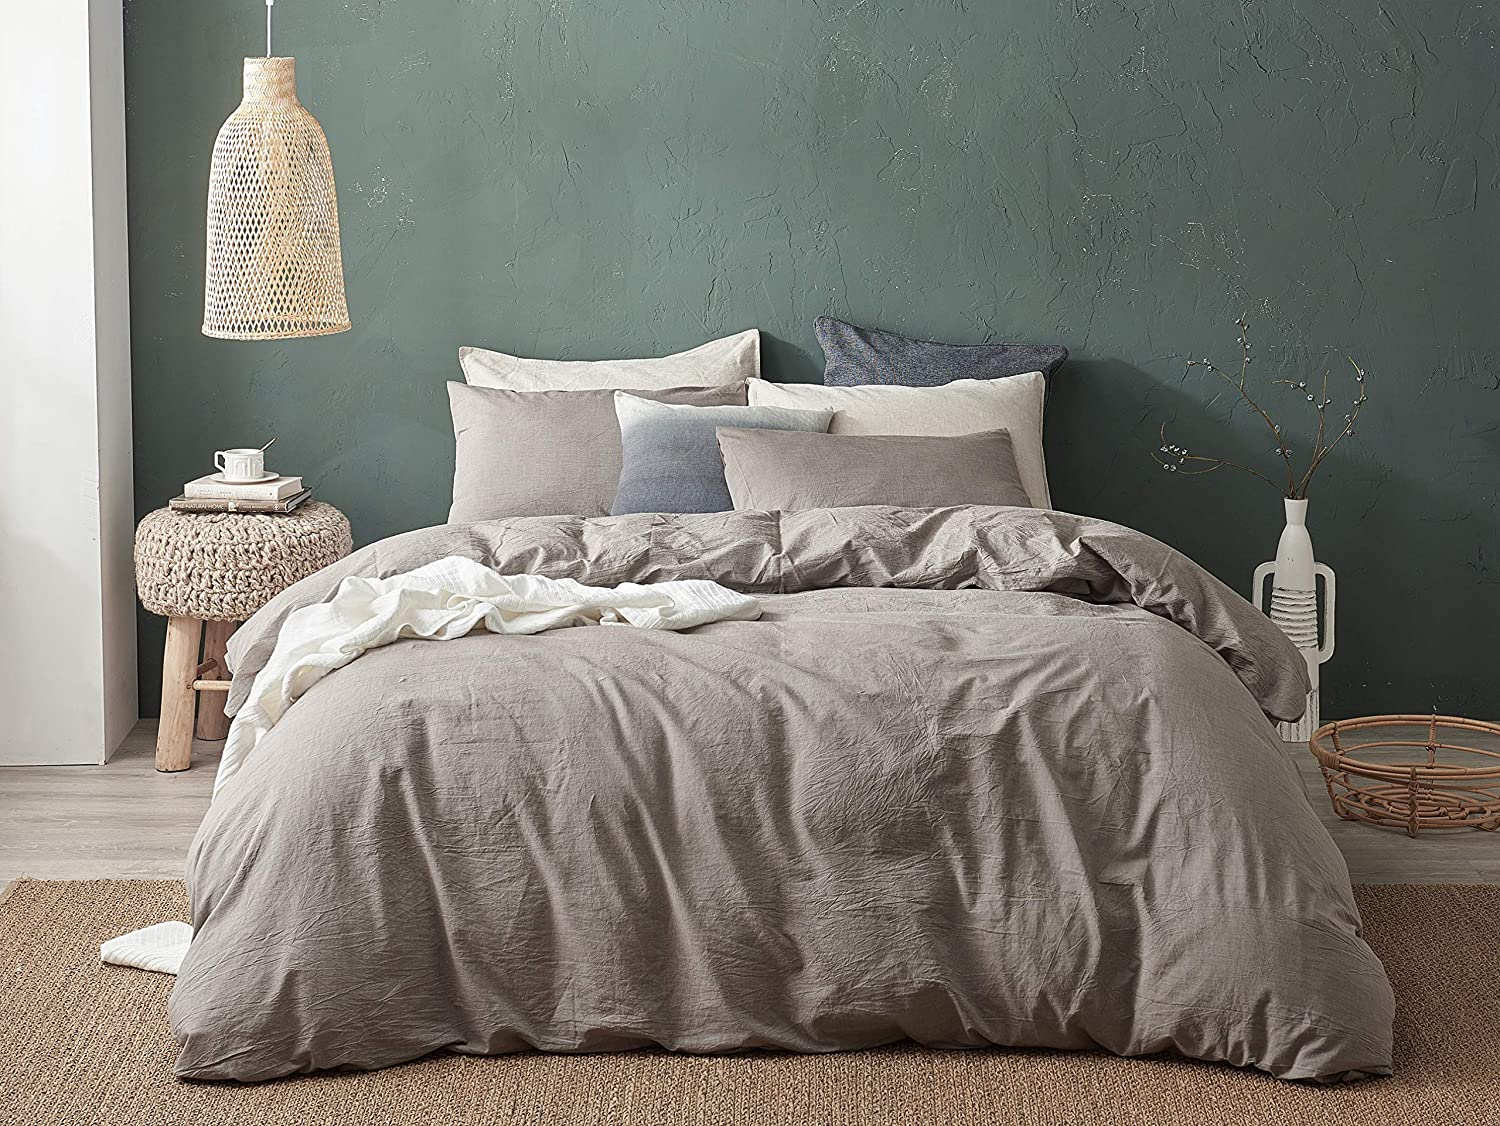 DAPU Long-Staple Washed Cotton Duvet Cover Set (Grey, Full Queen, Duvet Cover and 2 Pillowcases)